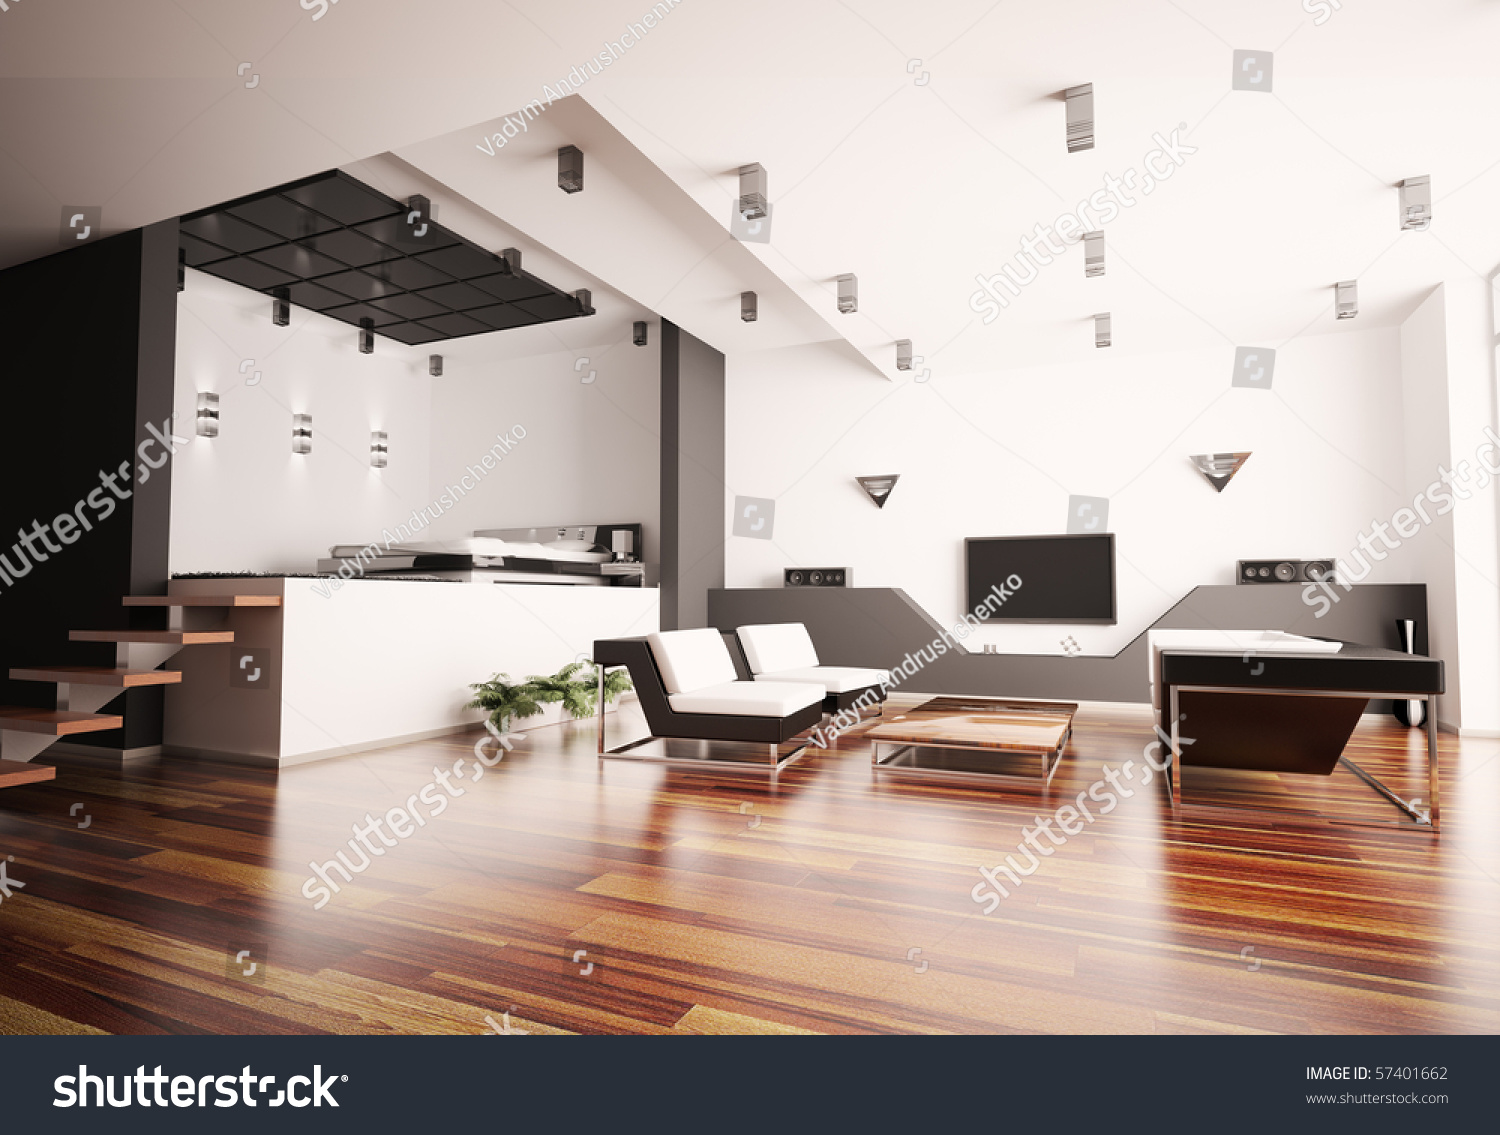 Modern apartment bedrooms - Modern Apartment With Living Room And Bedroom Interior 3d